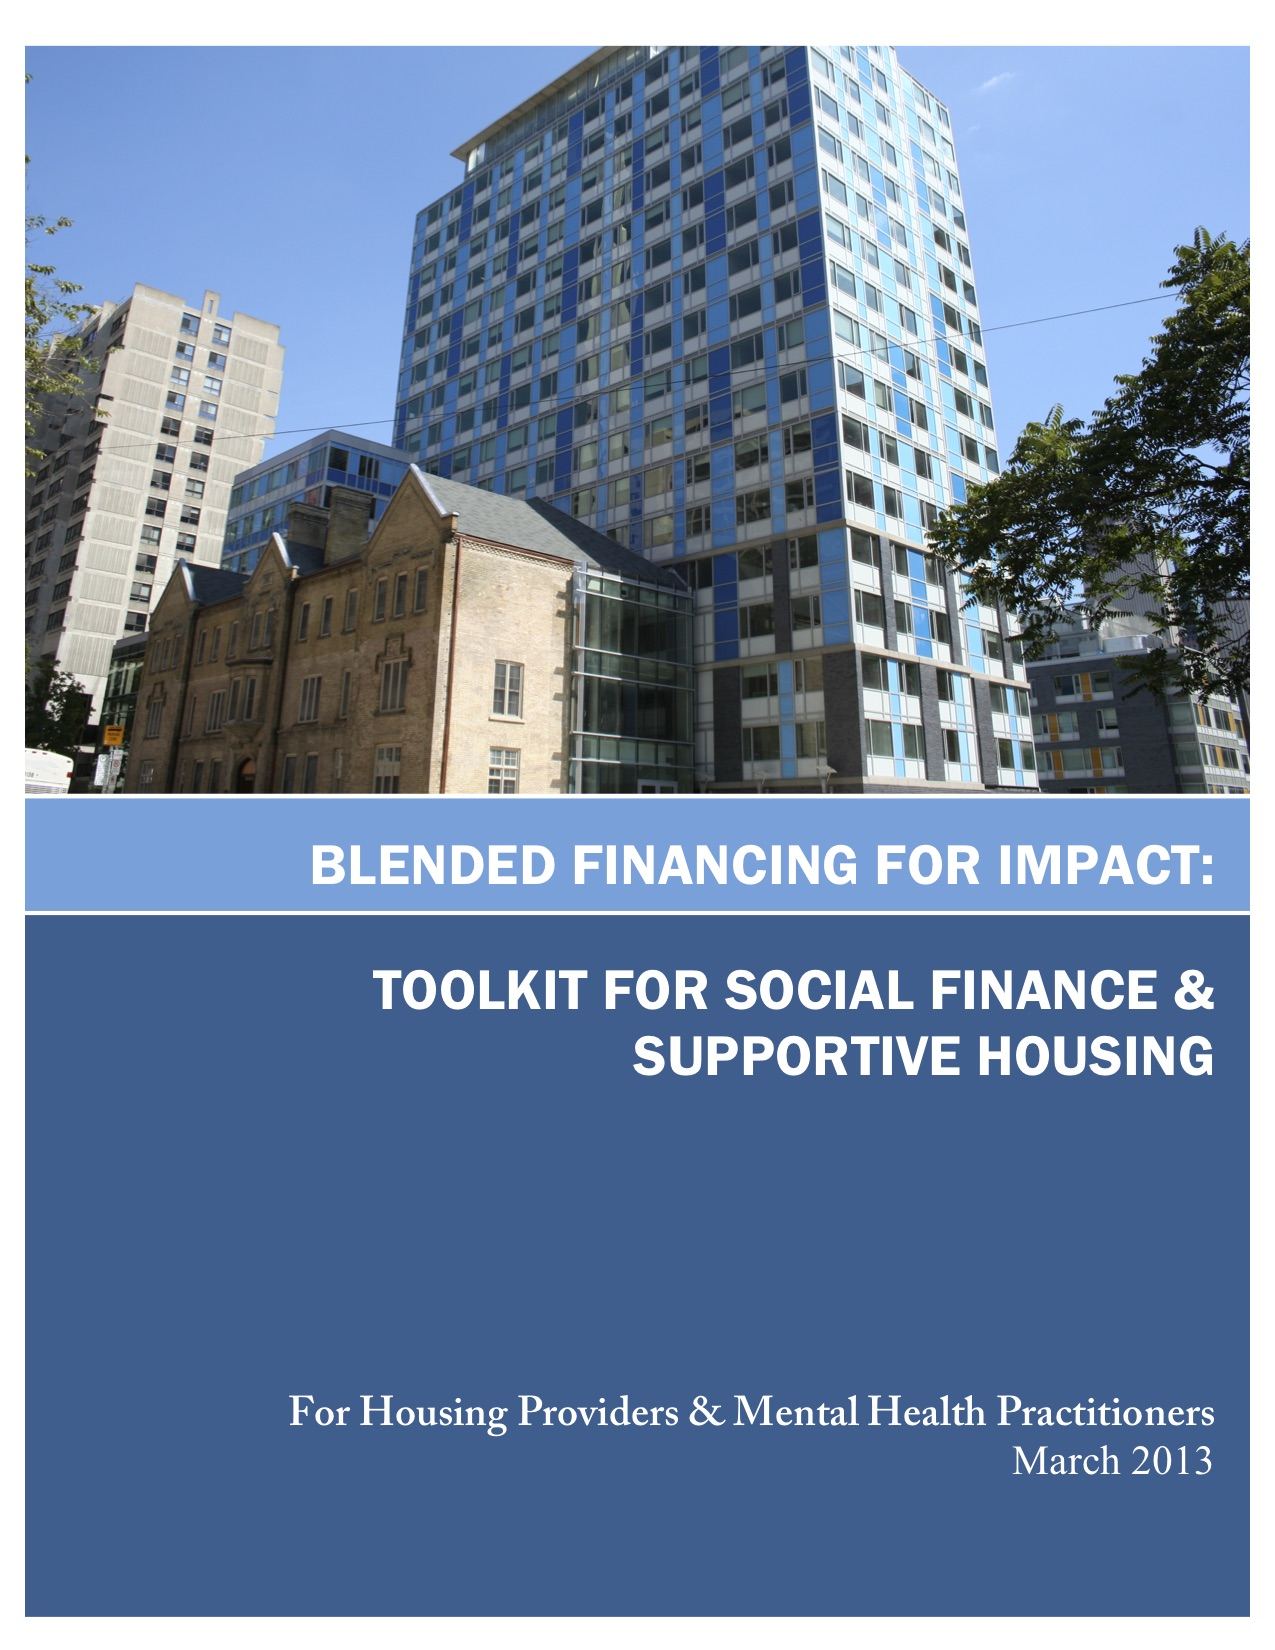 Blended Finance for Impact: Toolkit for Social Finance & Supportive Housing